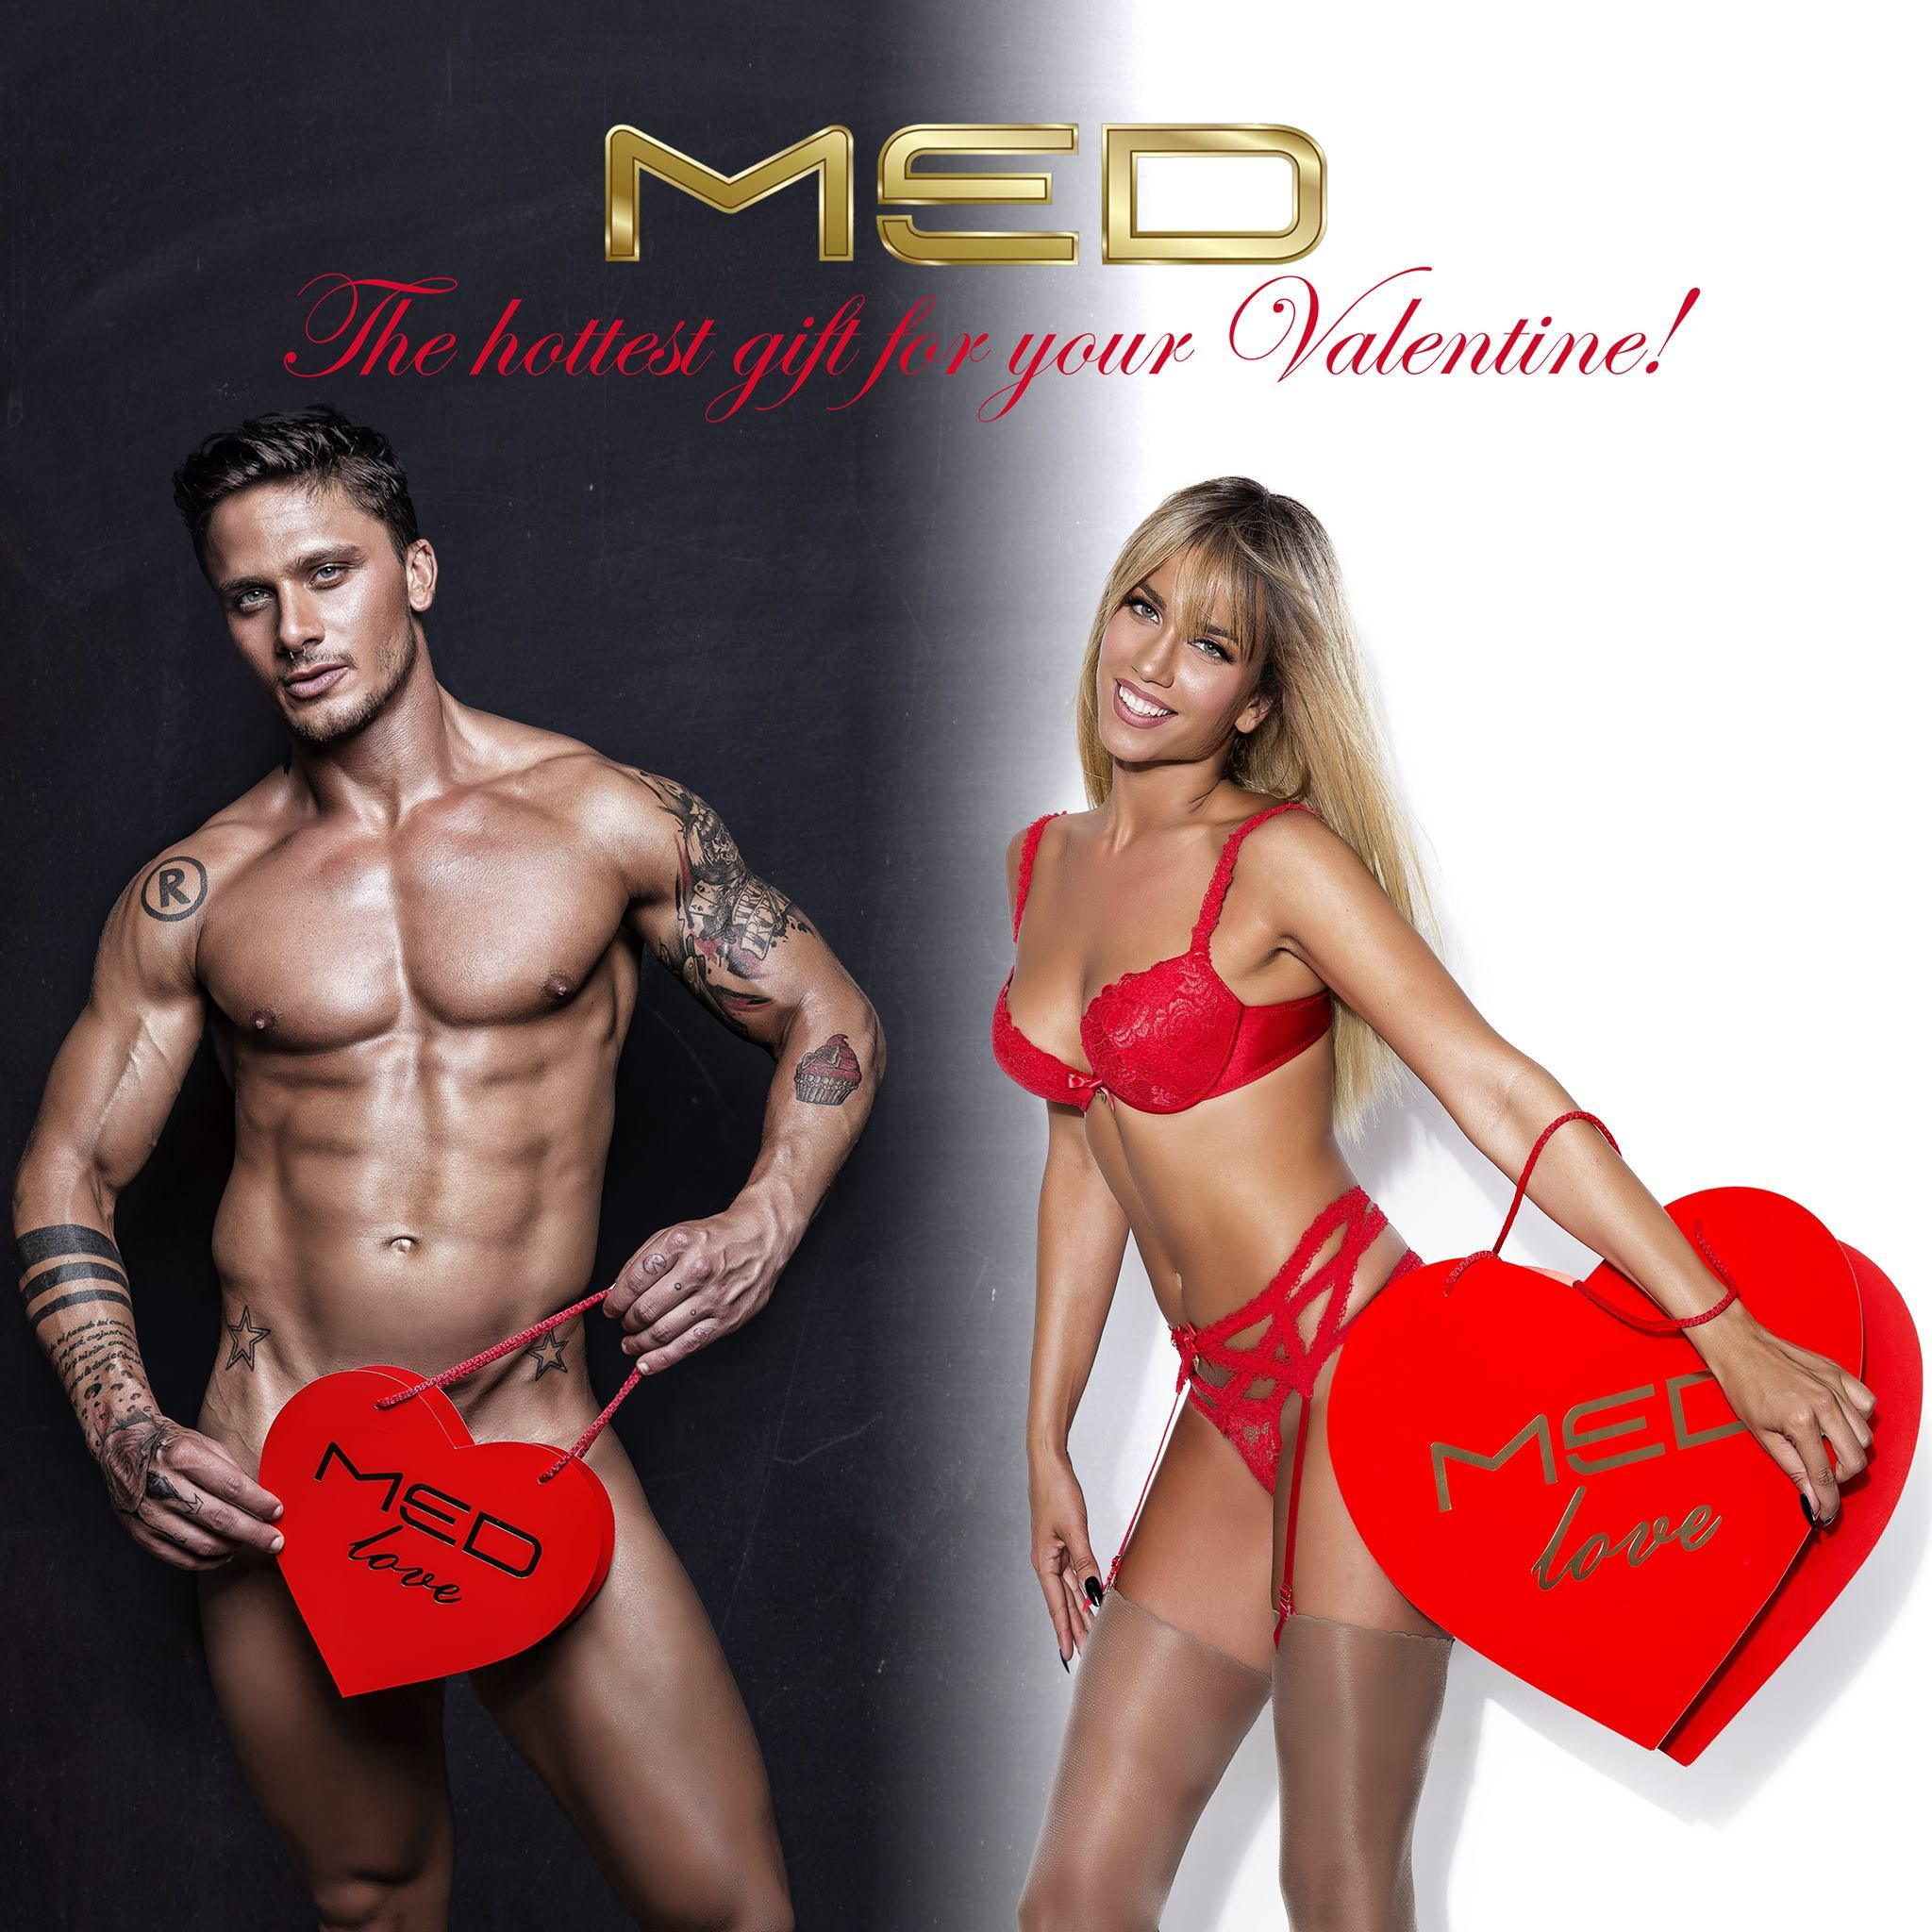 ceb93d4914f0 MED Underwear... The hottest gift for your Valentine!